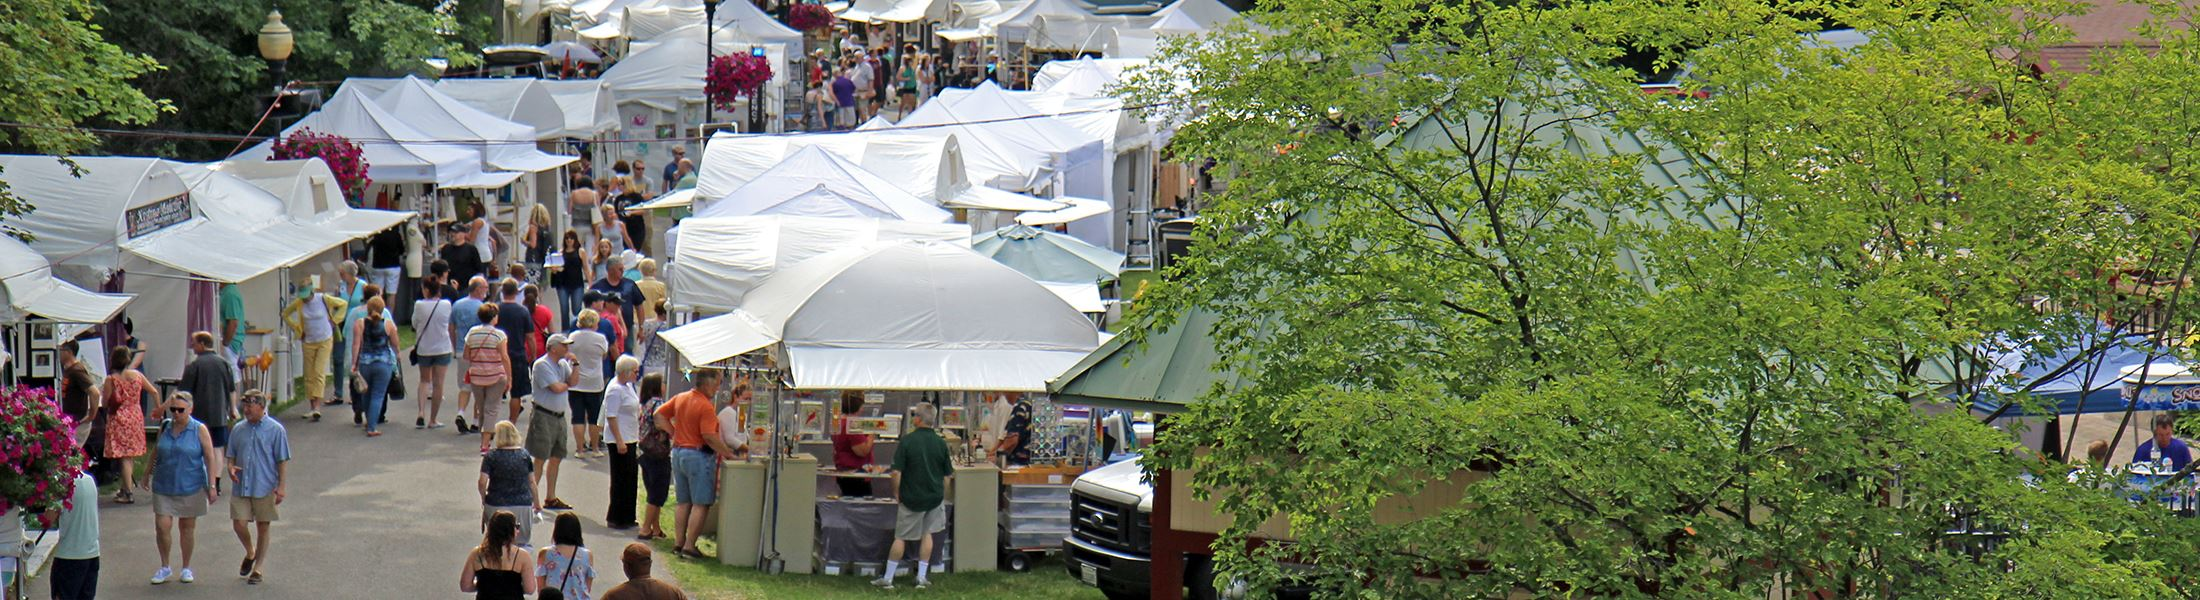 Image of Cain Park Arts Festival